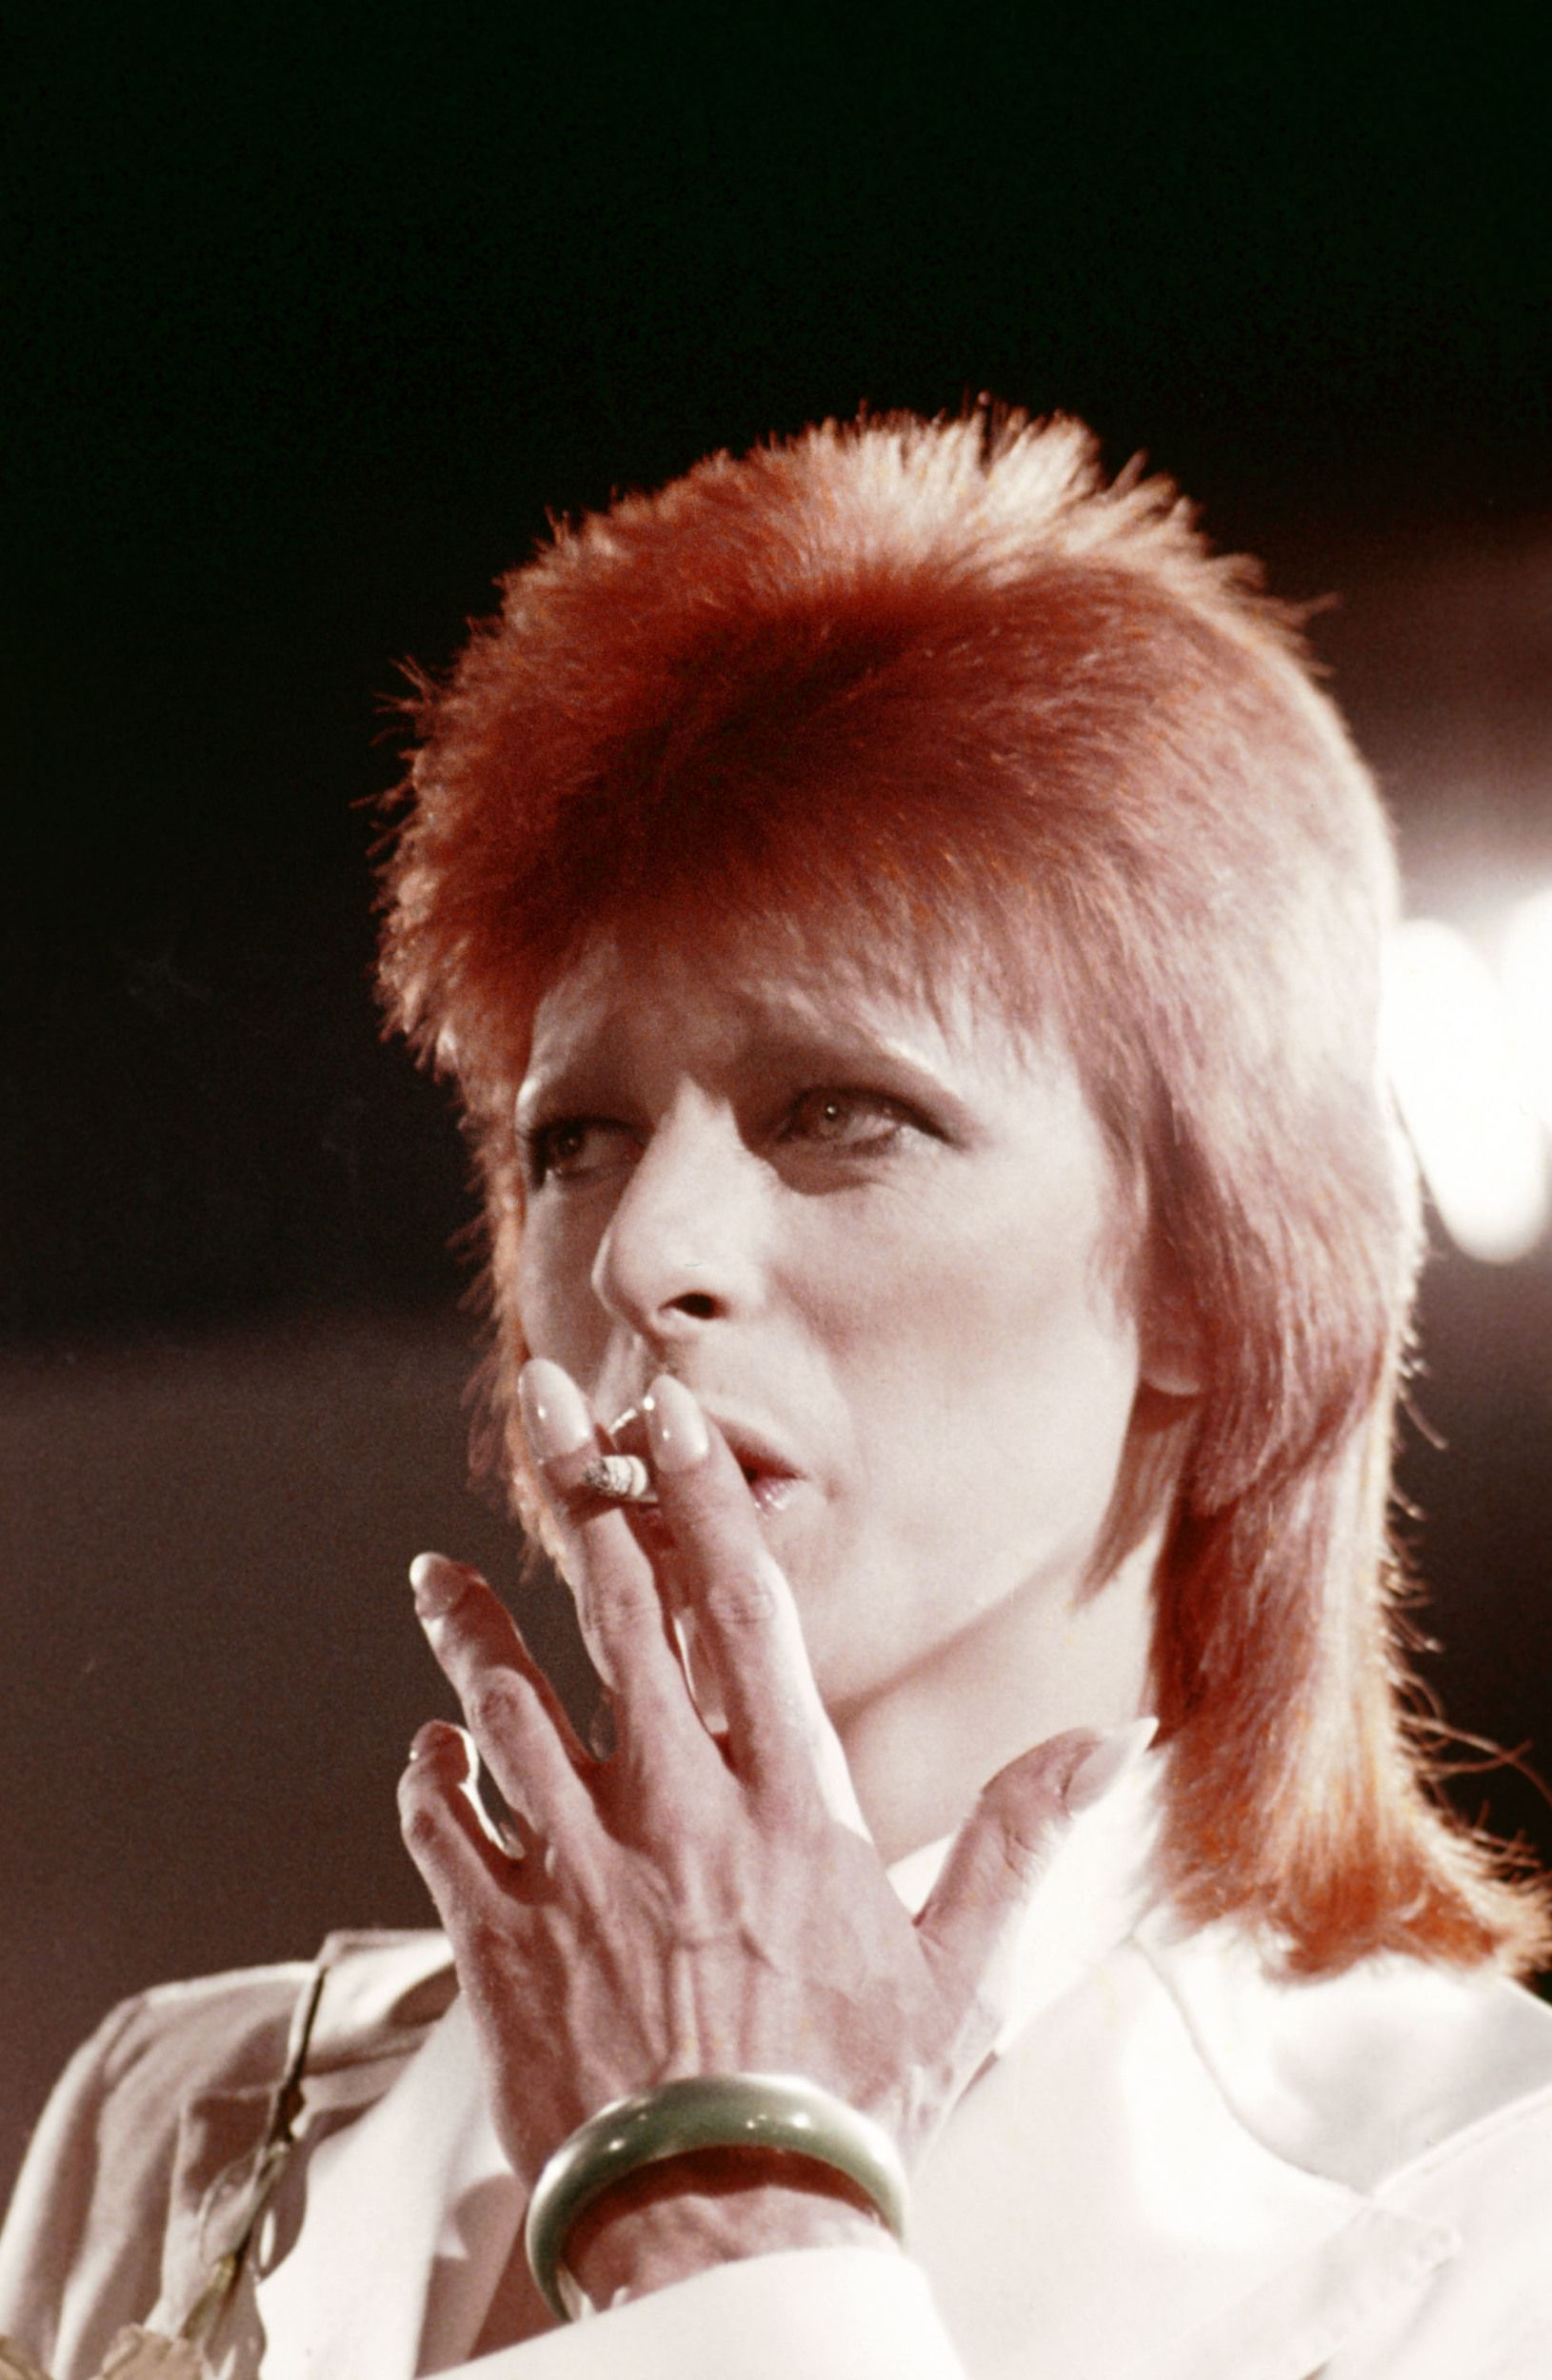 MIDNIGHT SPECIAL -- 'The 1980 Floor Show starring David Bowie' Episode 210 -- Aired: 11/16/73 -- Pictured: David Bowie during his last show as Ziggy Stardust filmed mostly at The Marquee Club in London, England from October 18-20, 1973 -- (Photo by: NBC/NBCU Photo Bank via Getty Images) via @AOL_Lifestyle Read more: https://www.aol.com/article/2014/07/24/bing-crosbys-kids-recall-dads-duet-with-david-bowie/20936299/?a_dgi=aolshare_pinterest#fullscreen